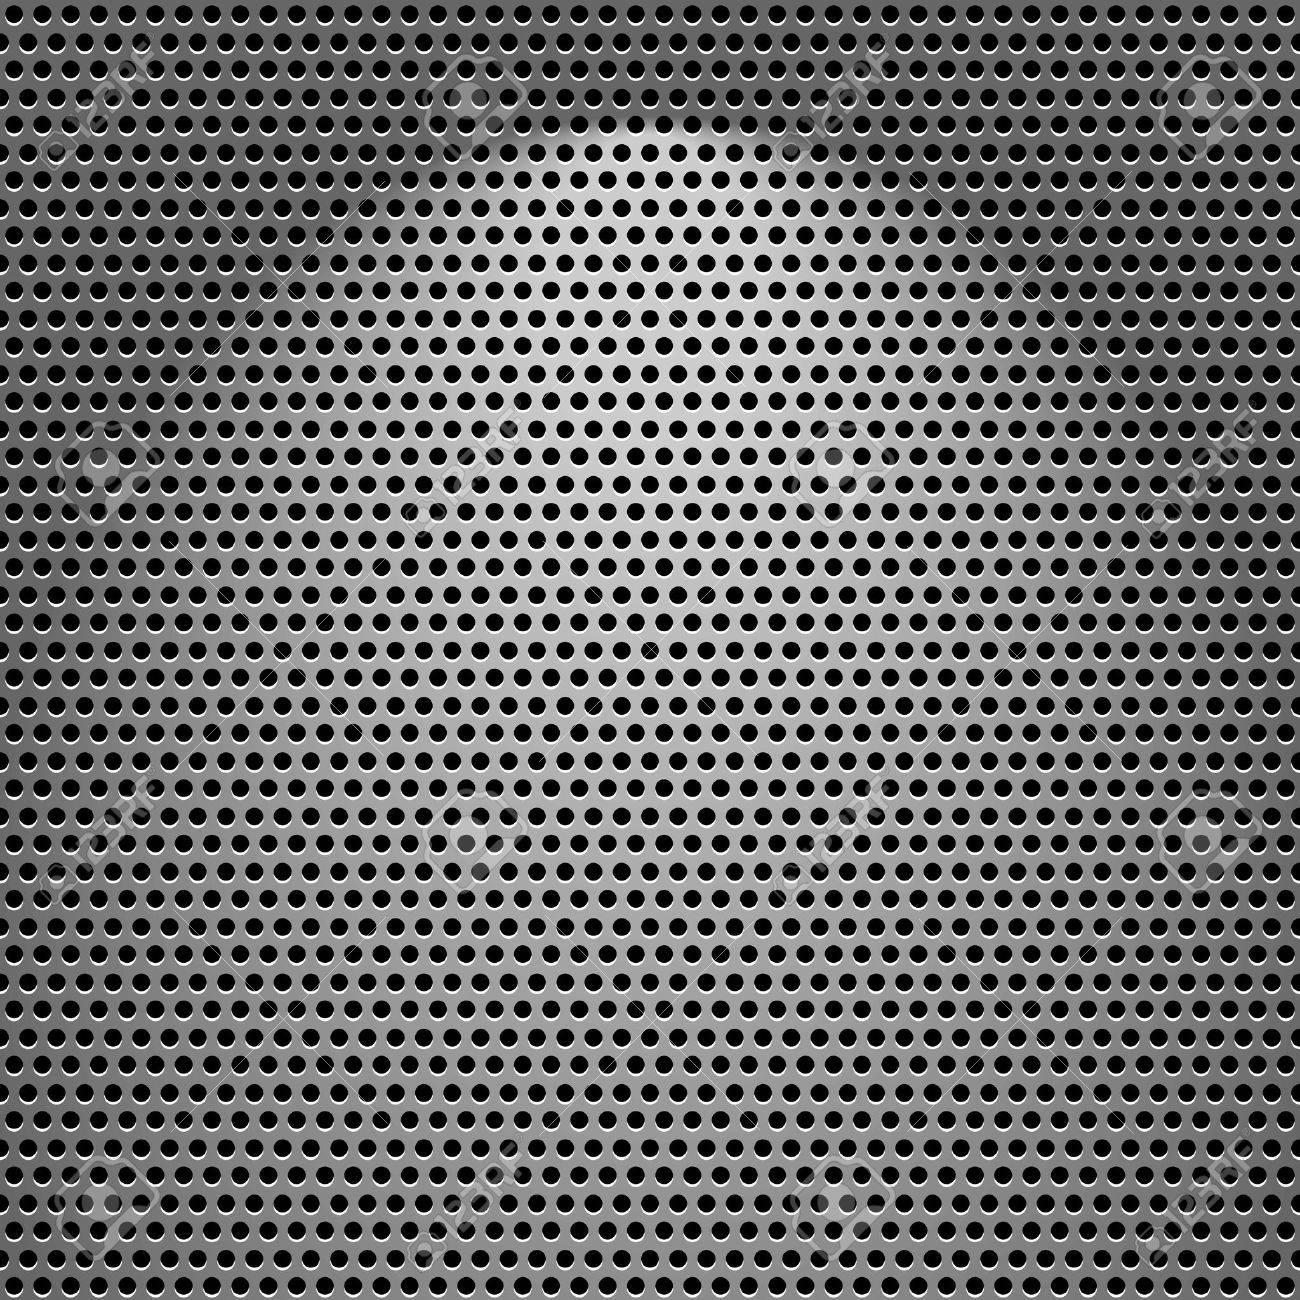 High quality  illustration of Steel texture. Stock Vector - 6326801